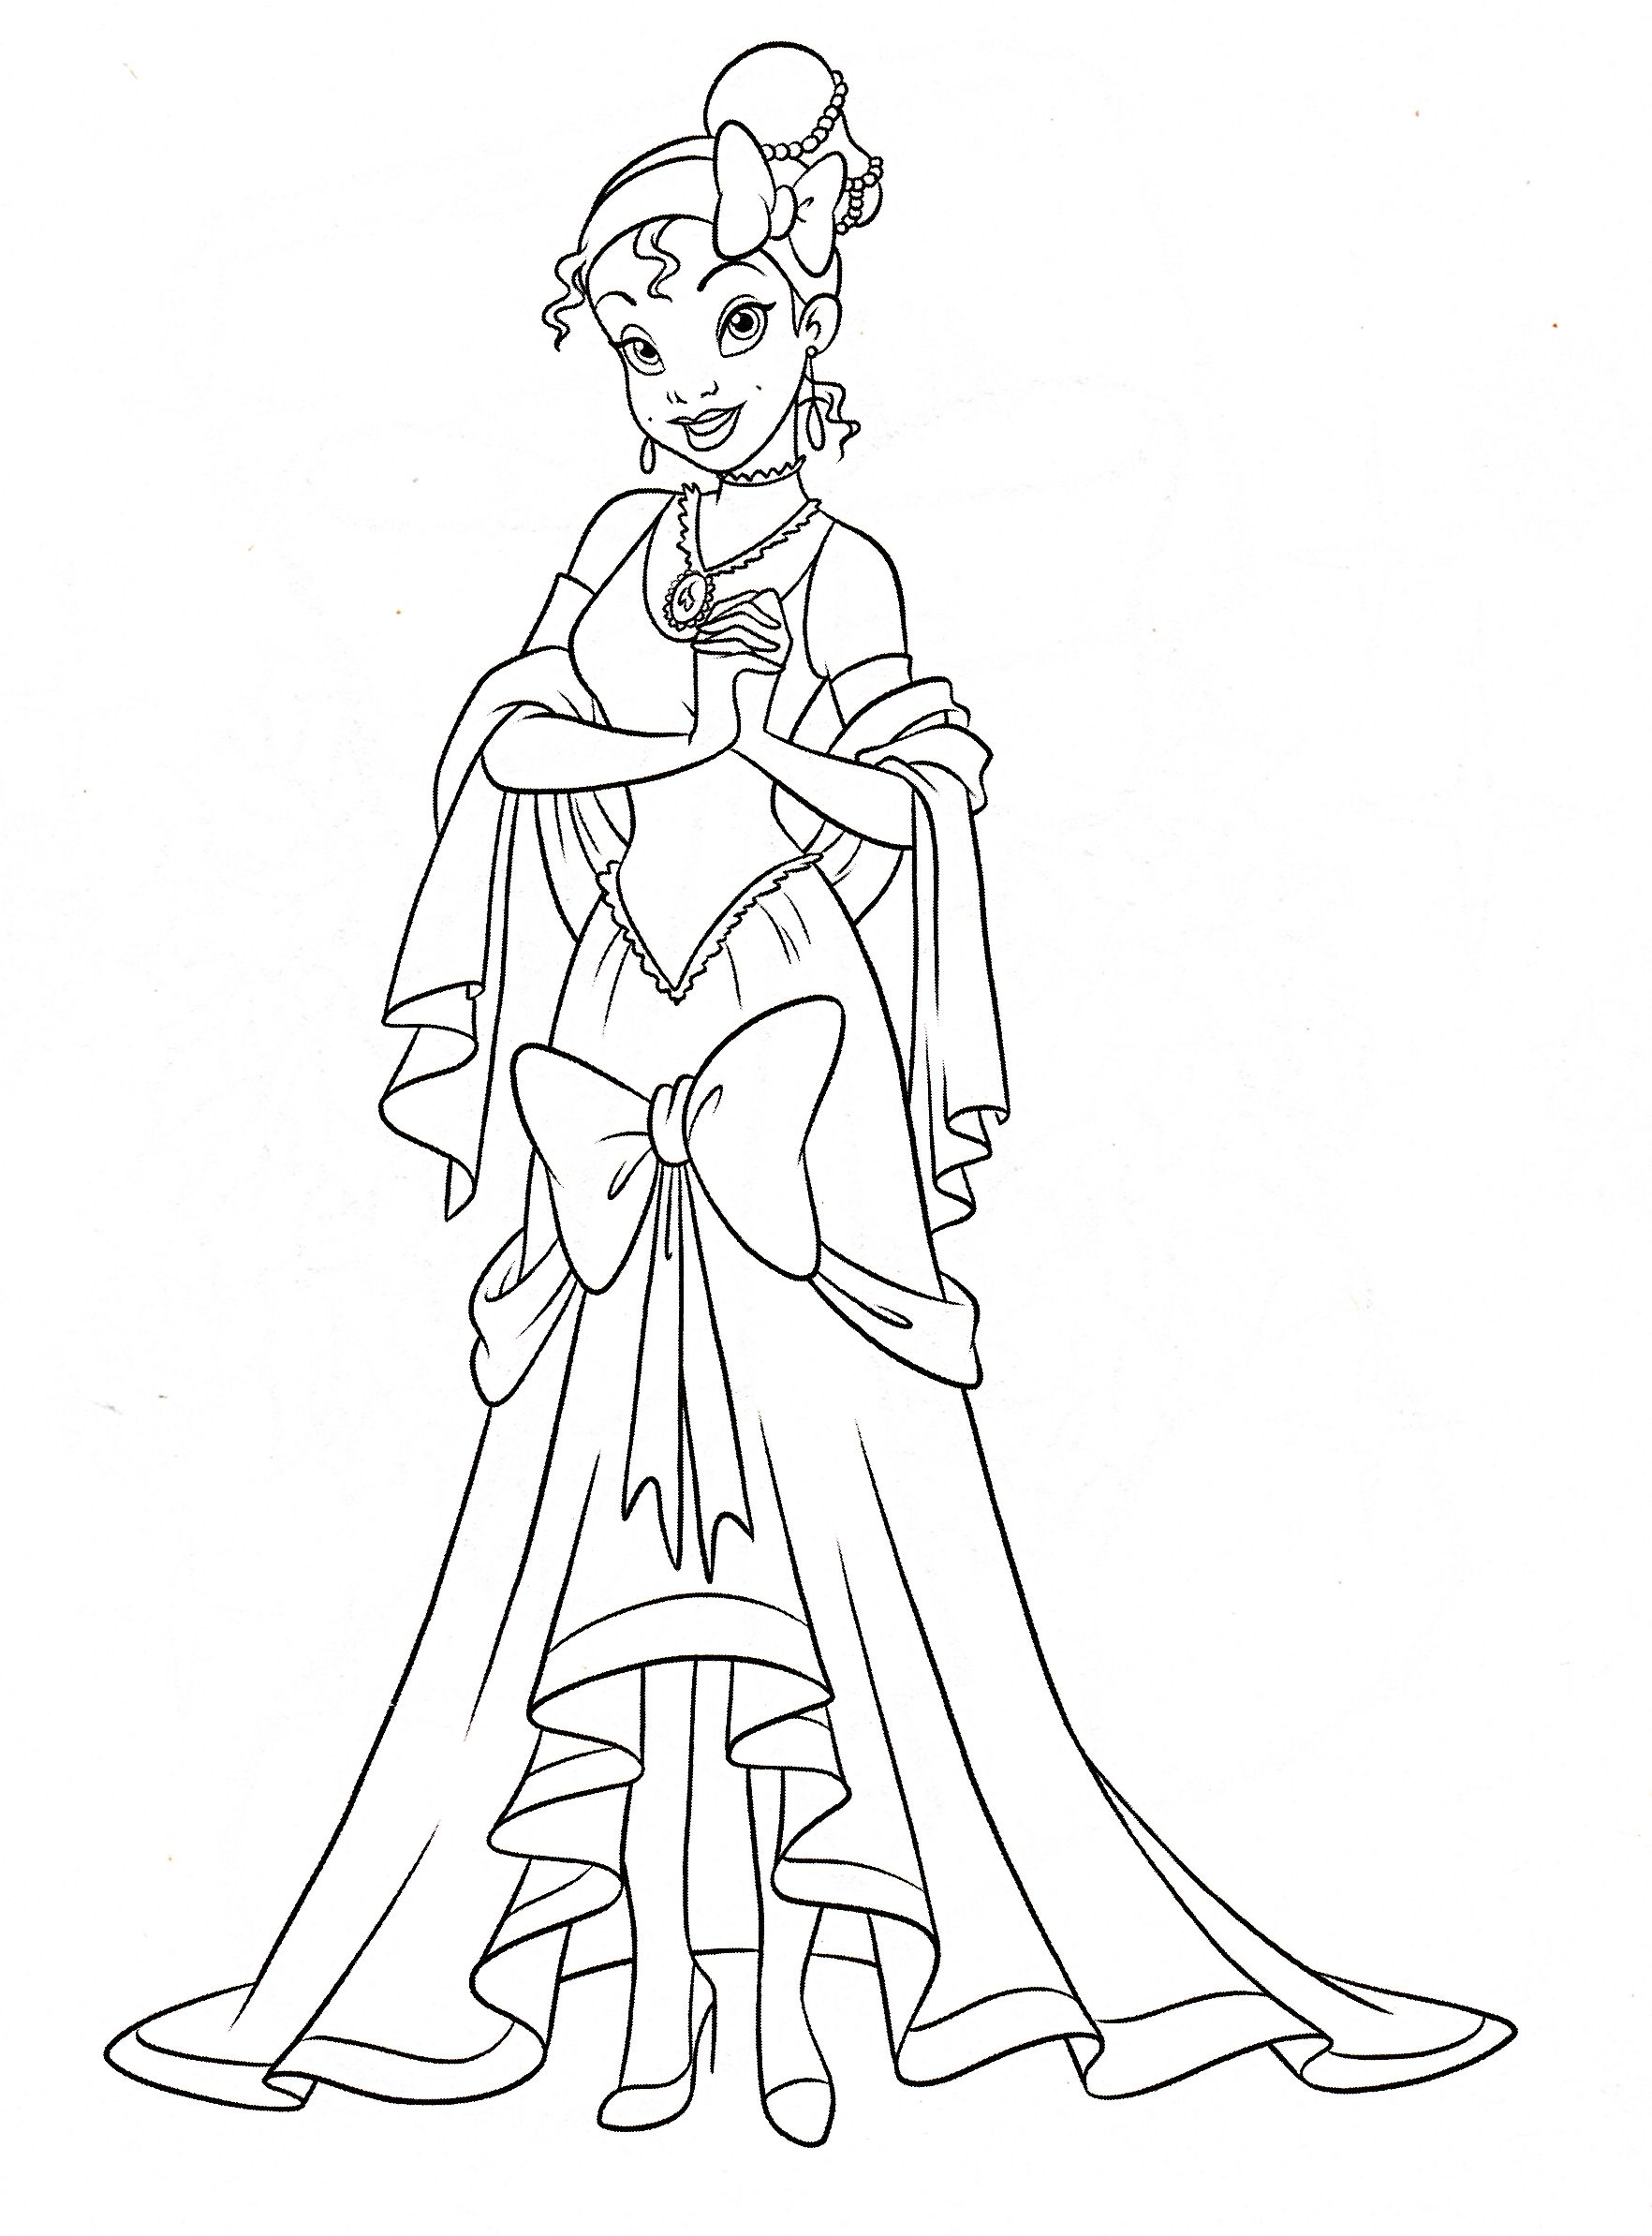 Walt Disney Coloring Pages Princess Tiana Disney